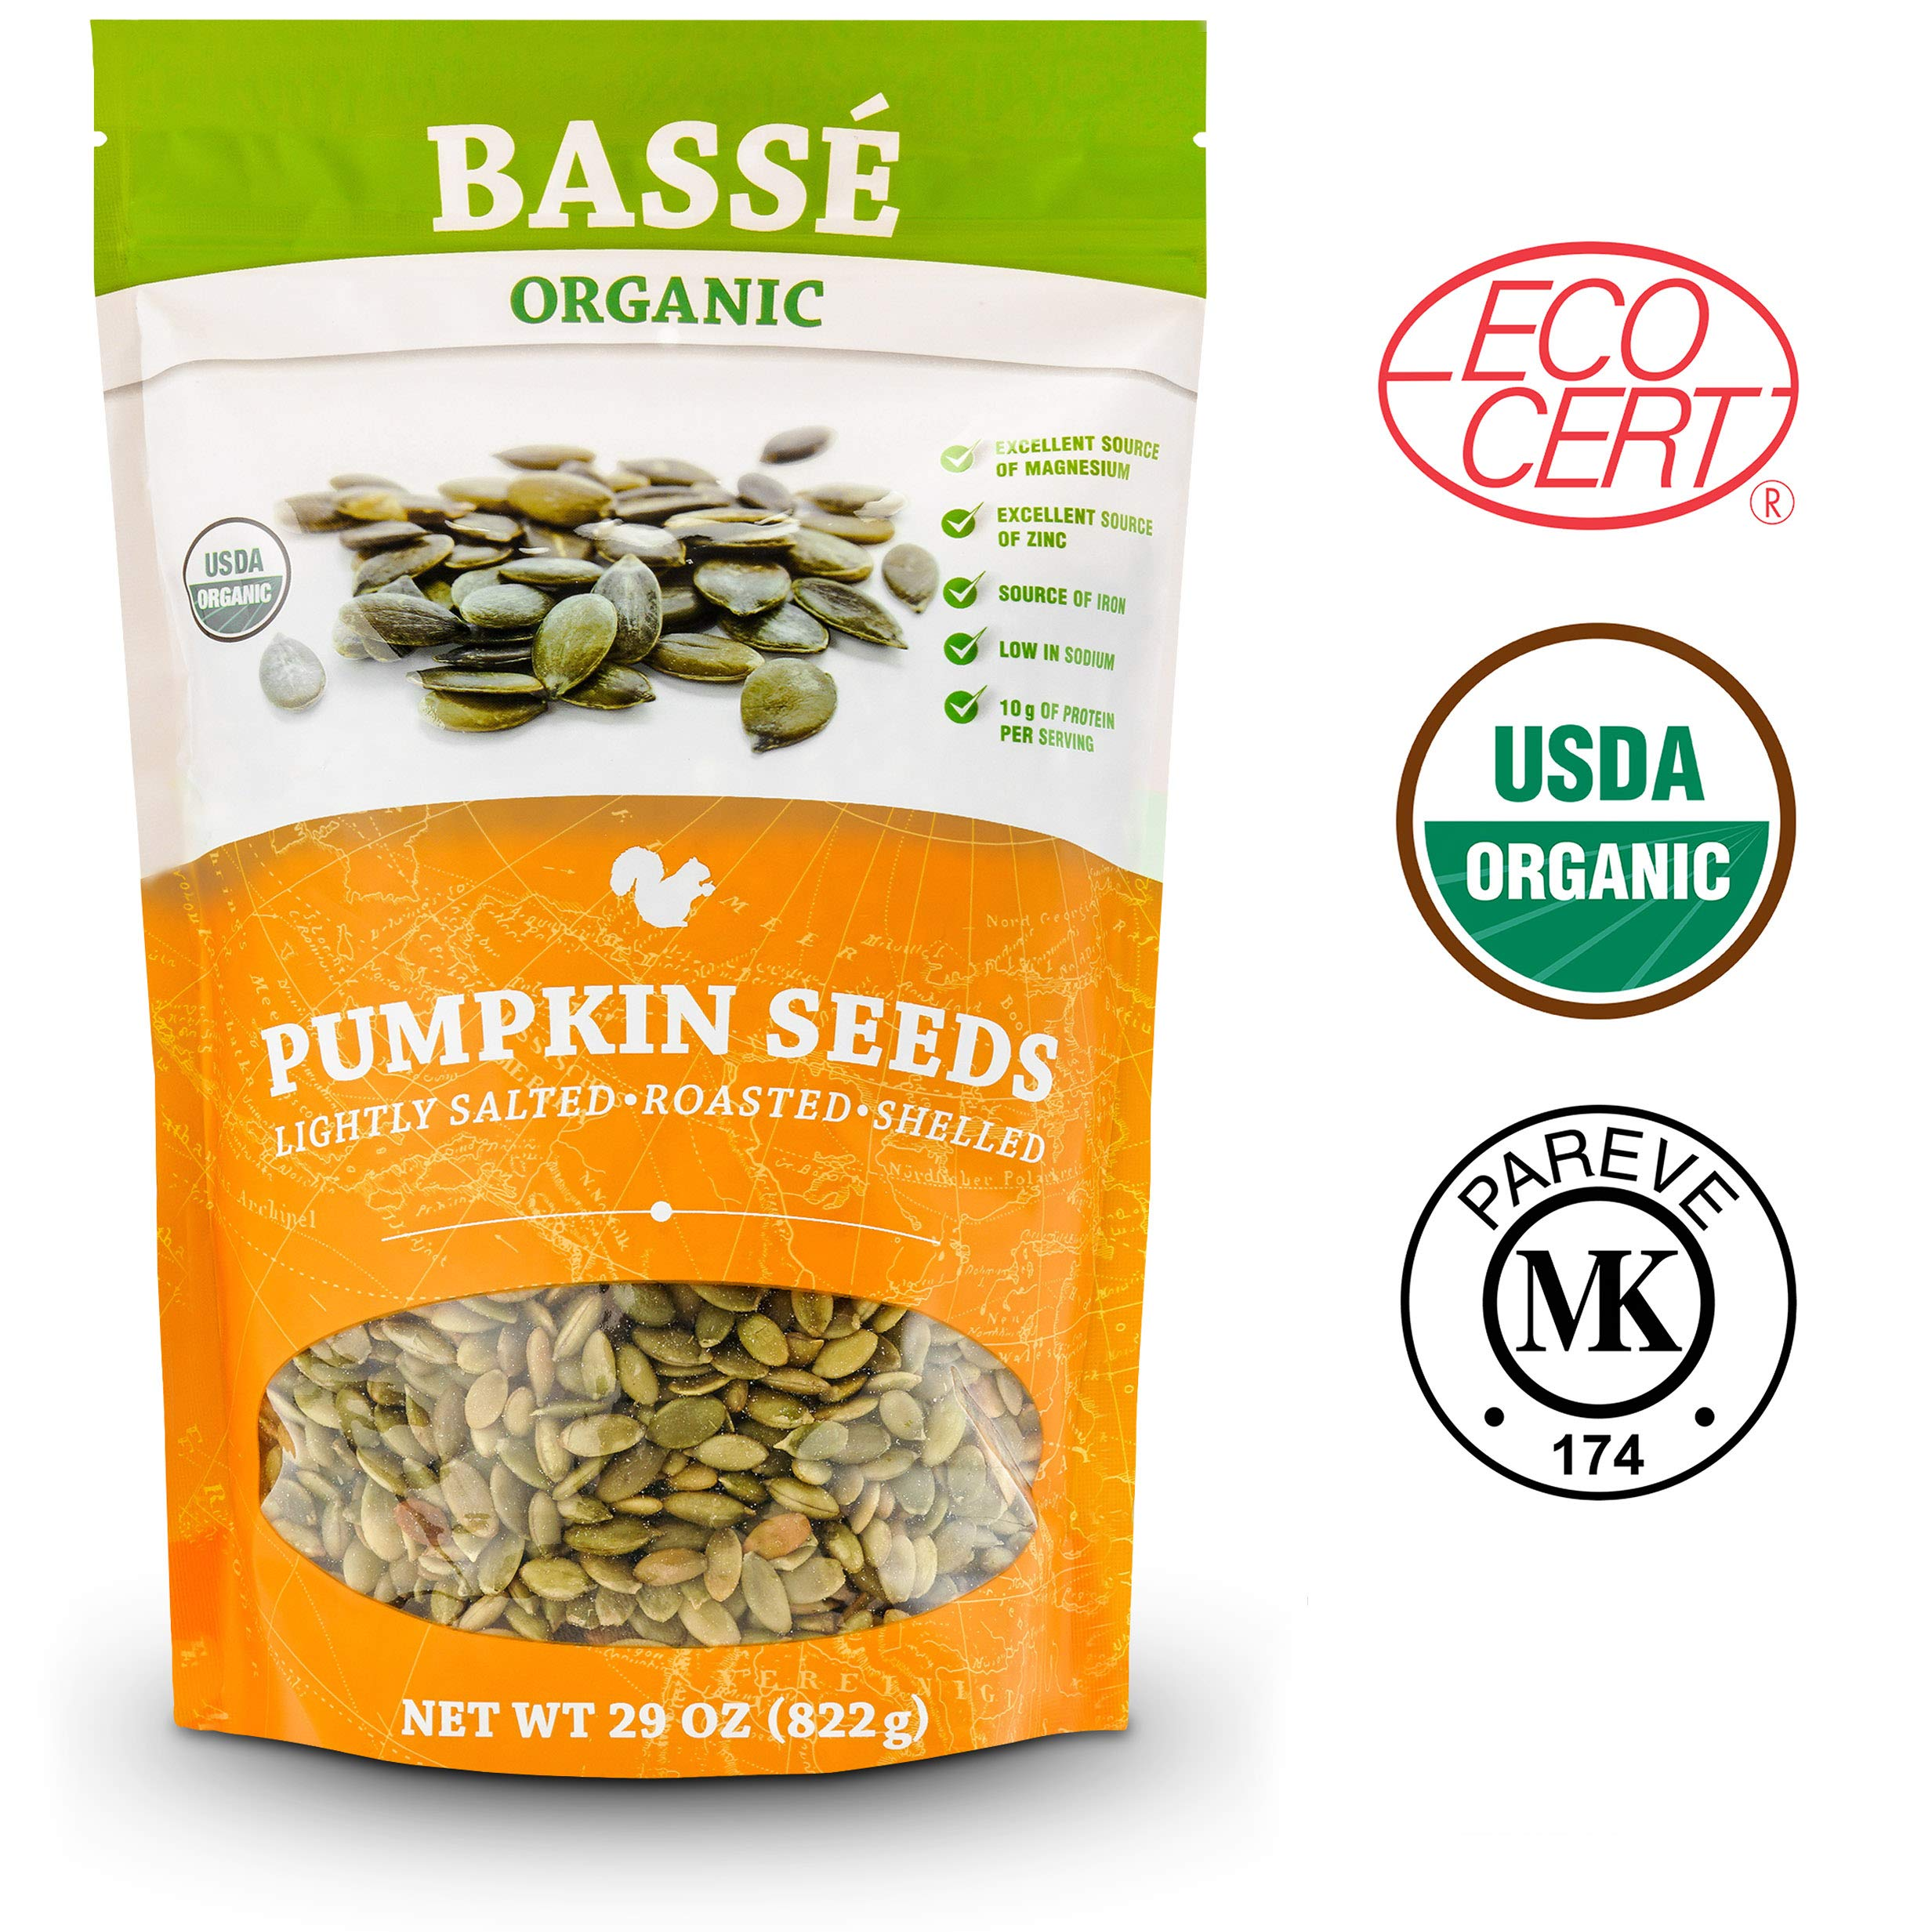 BASSE ORGANIC PUMPKIN SEEDS LIGHTLY SALTED. ROASTED, SHELLED 29 Oz (822g) by Basse Nuts